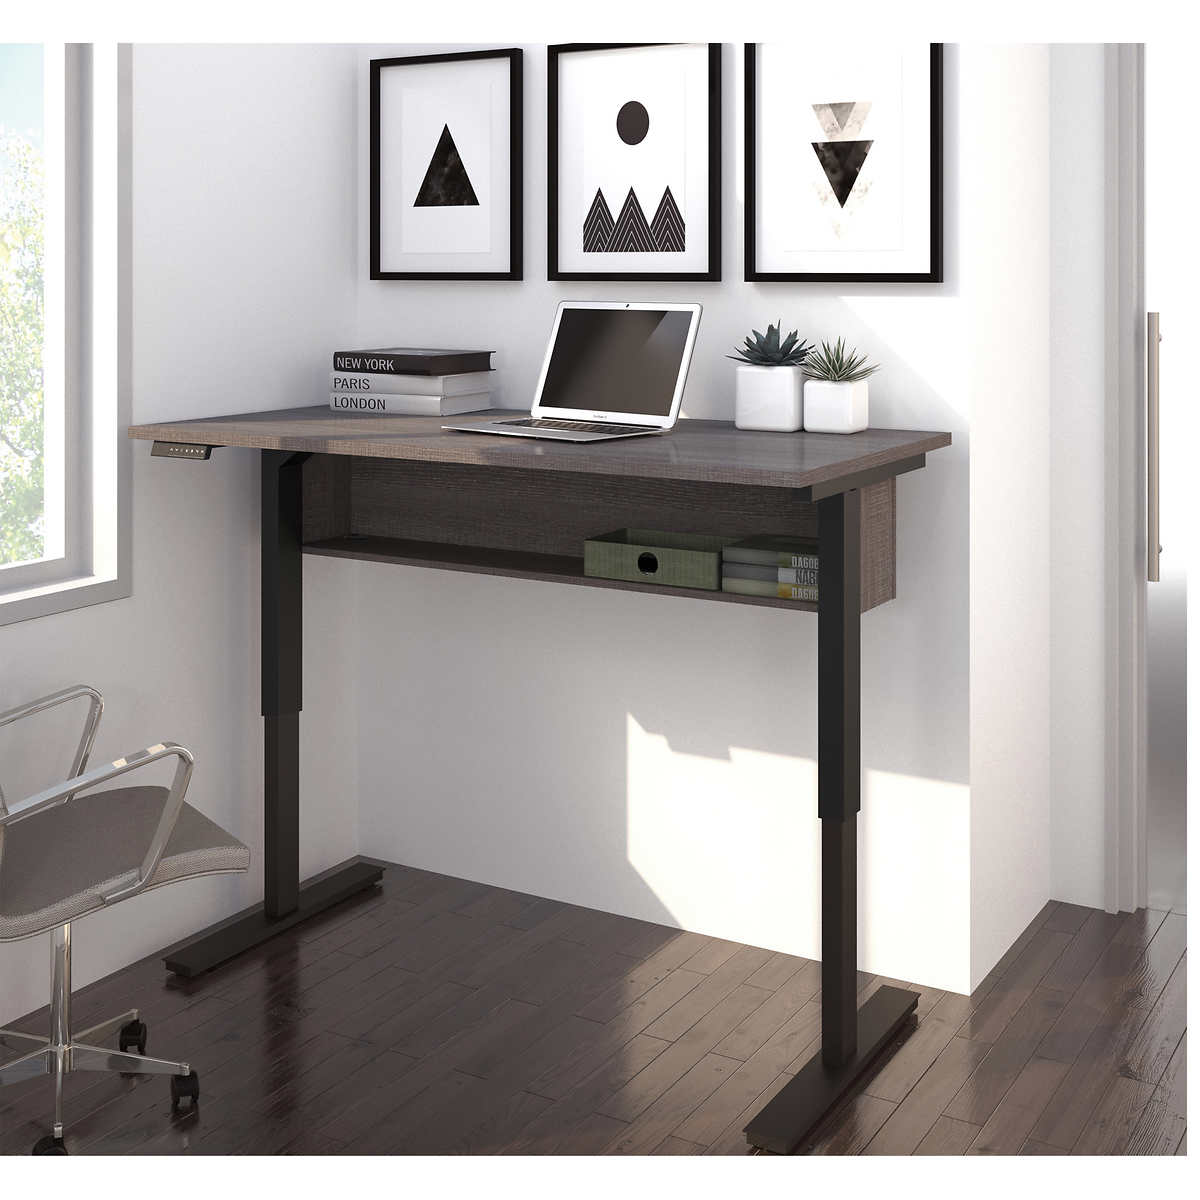 Workstation with wheels Space Solutions Portable Office Desk Home Office Collection 29.5 x 48 x 24